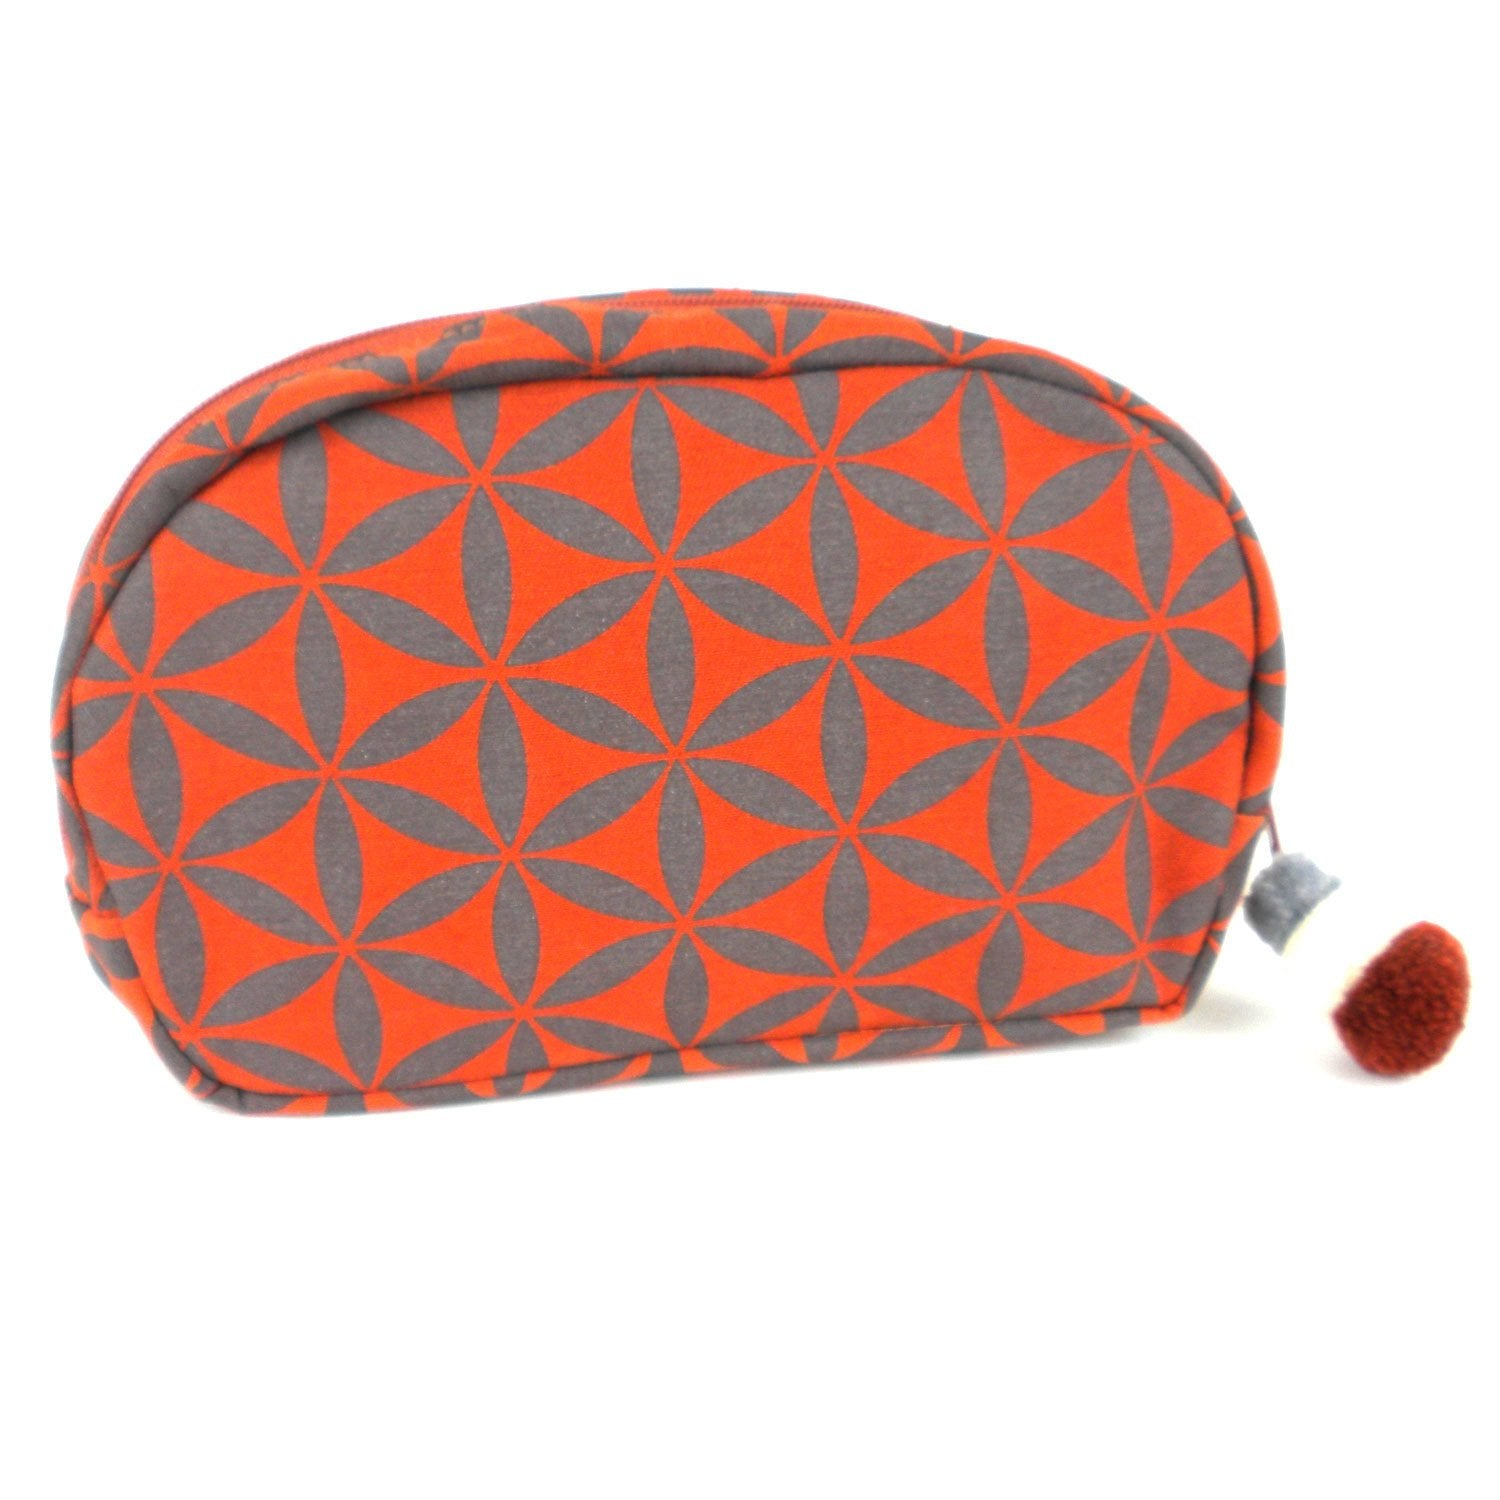 Flower of Life Collection Make-up Bag, Terra Cotta/Grey